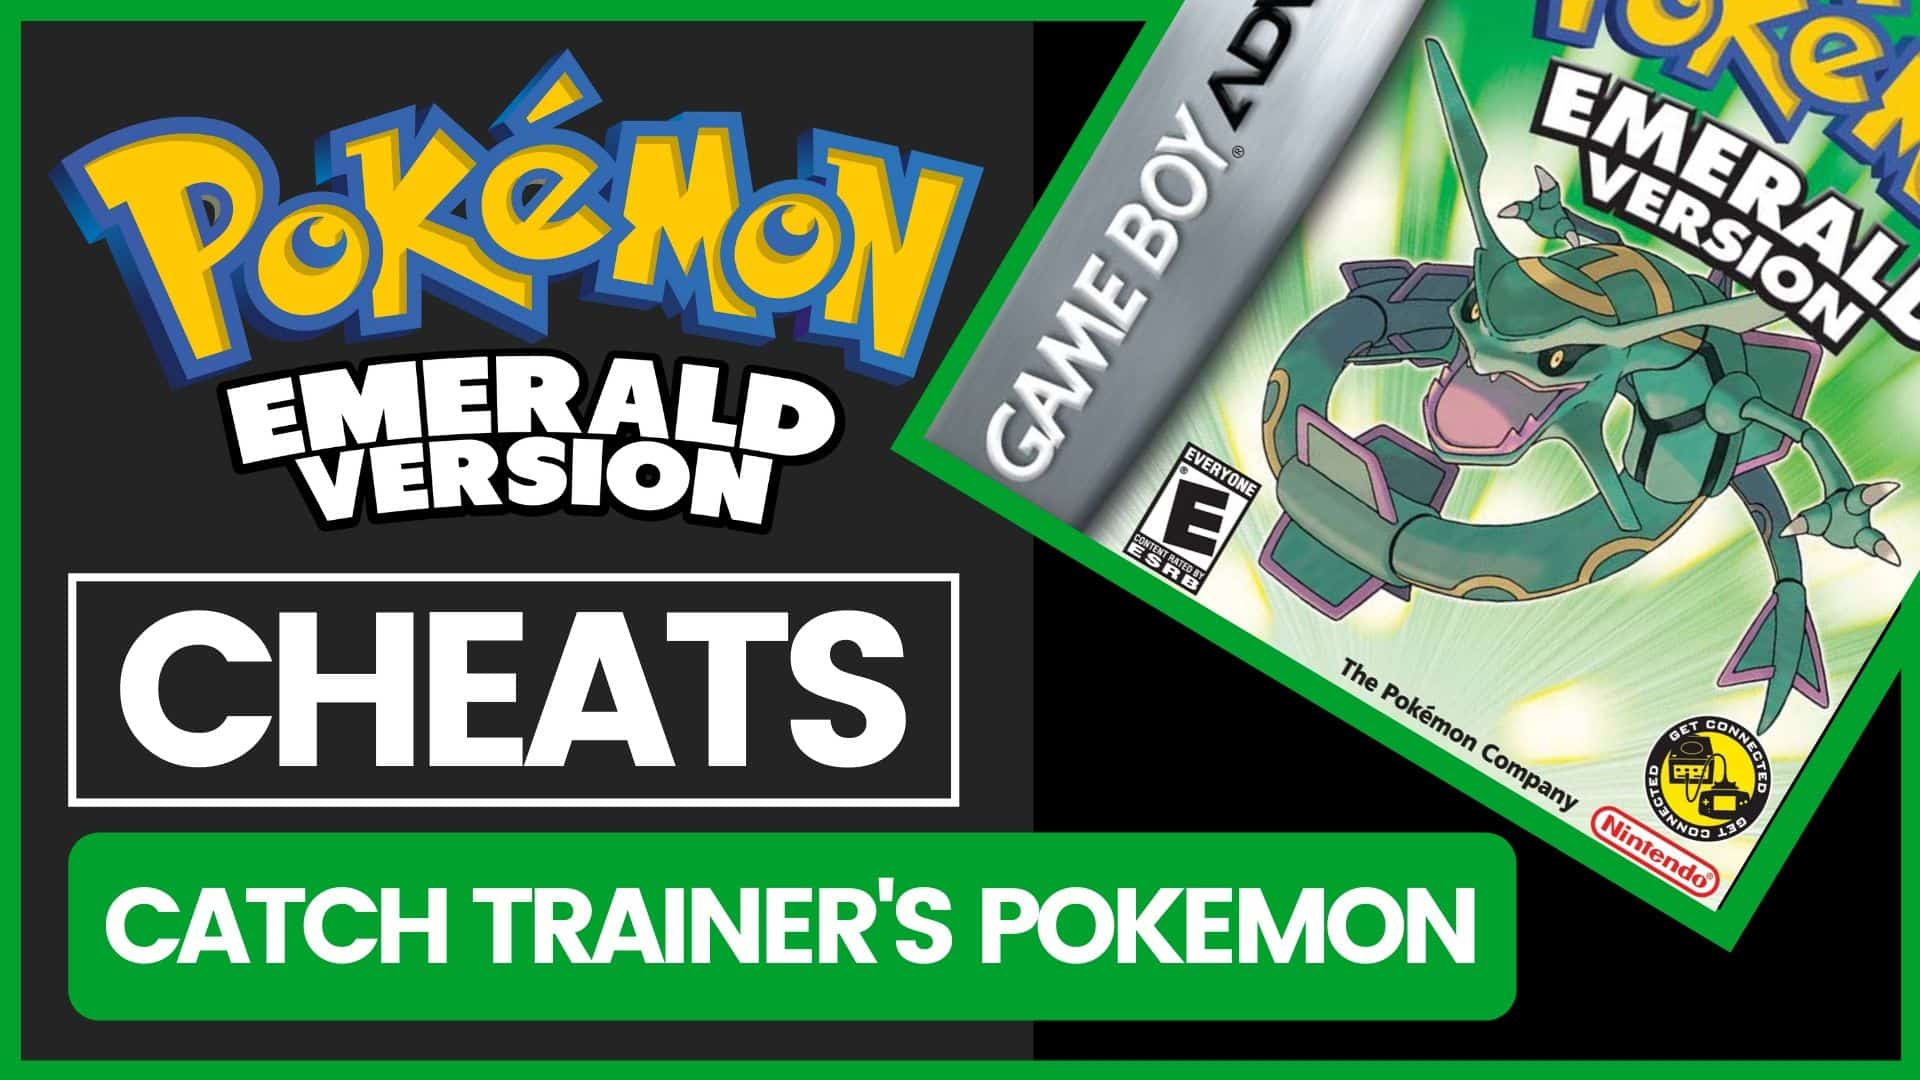 Pokemon Emerald Cheats - Catch Trainer's Pokemon